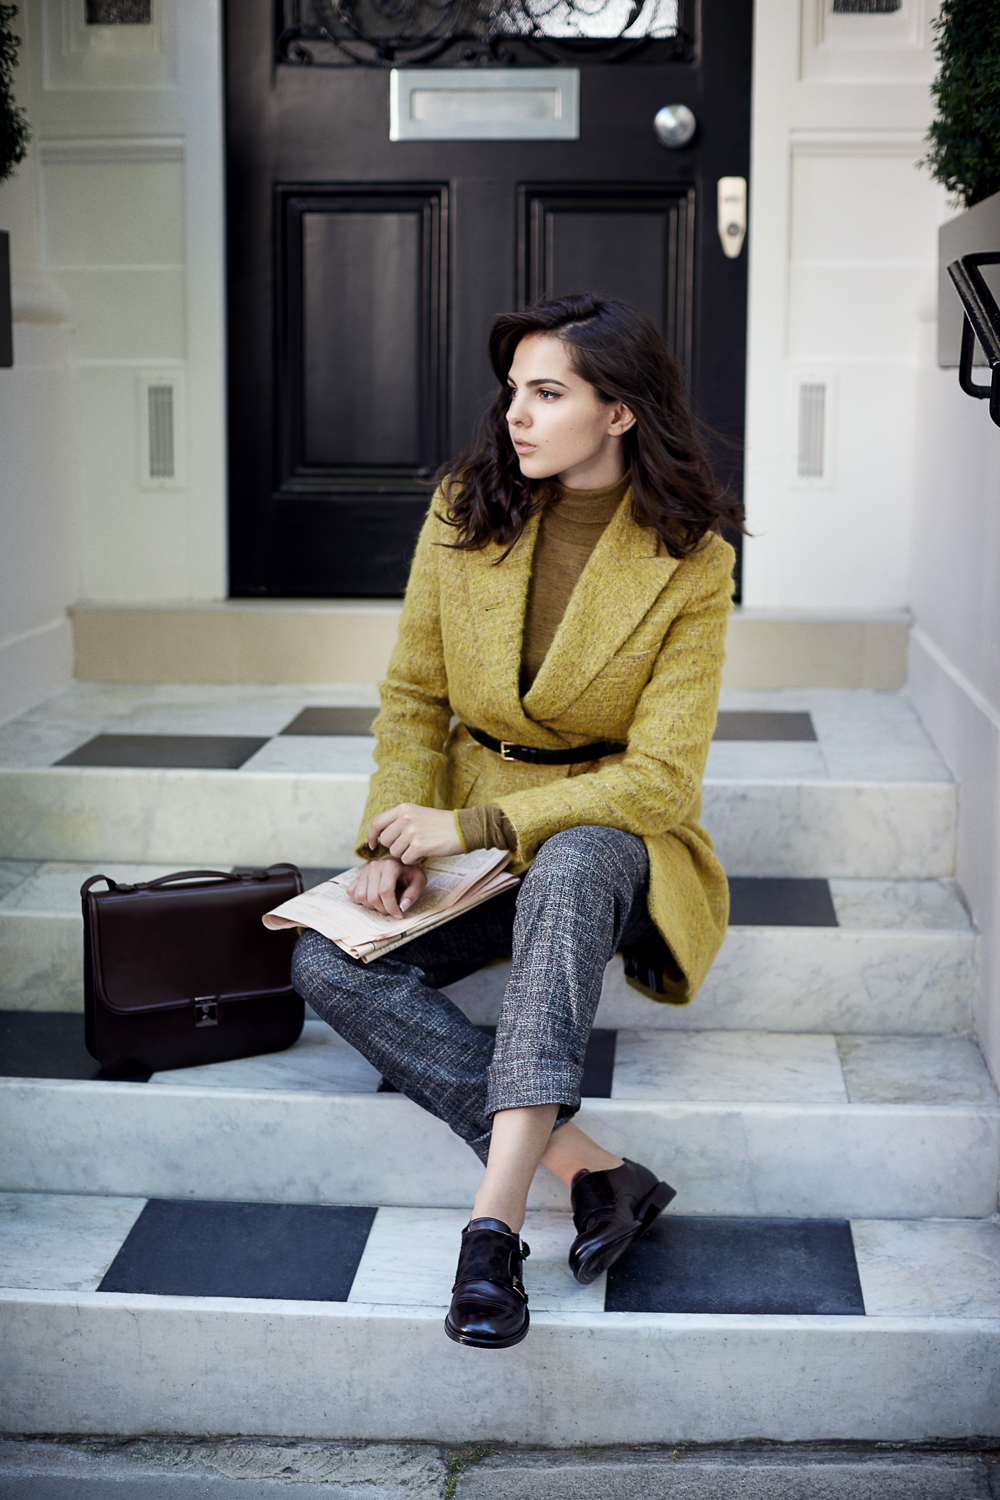 doina-ciobanu-paul-smith-campaign-8